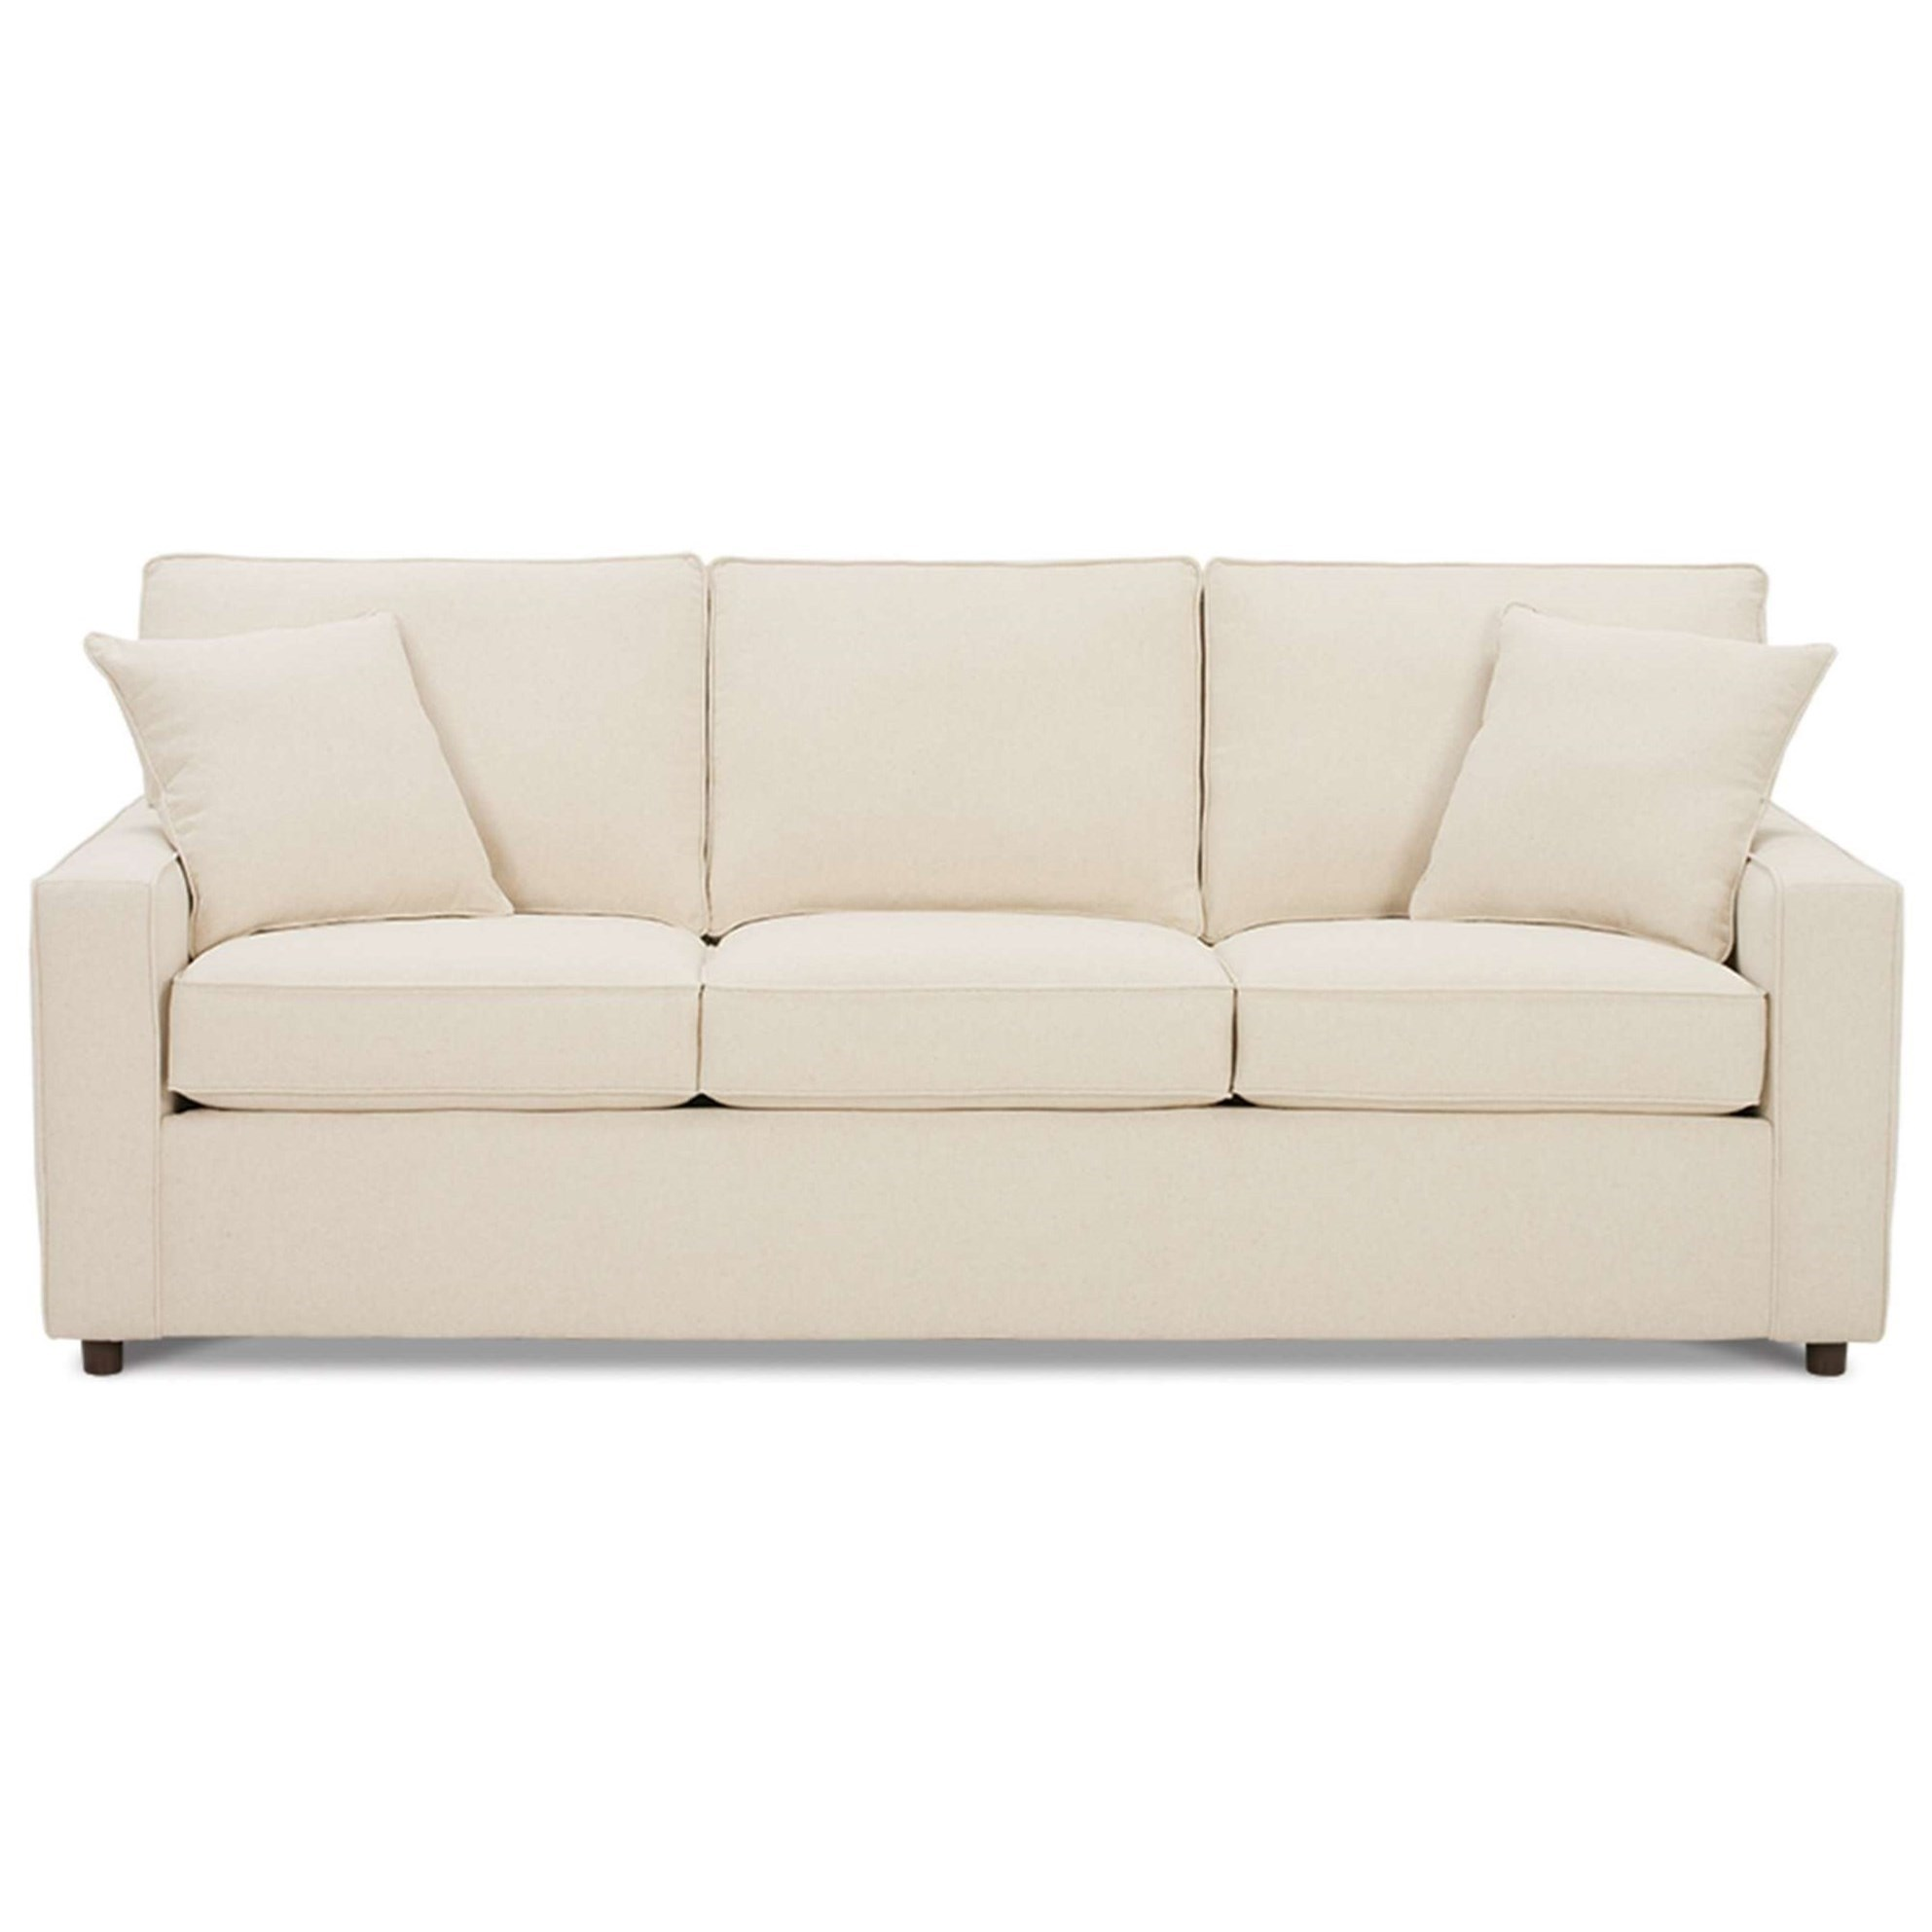 Rowe Monaco Transitional Sofa With Track Arms